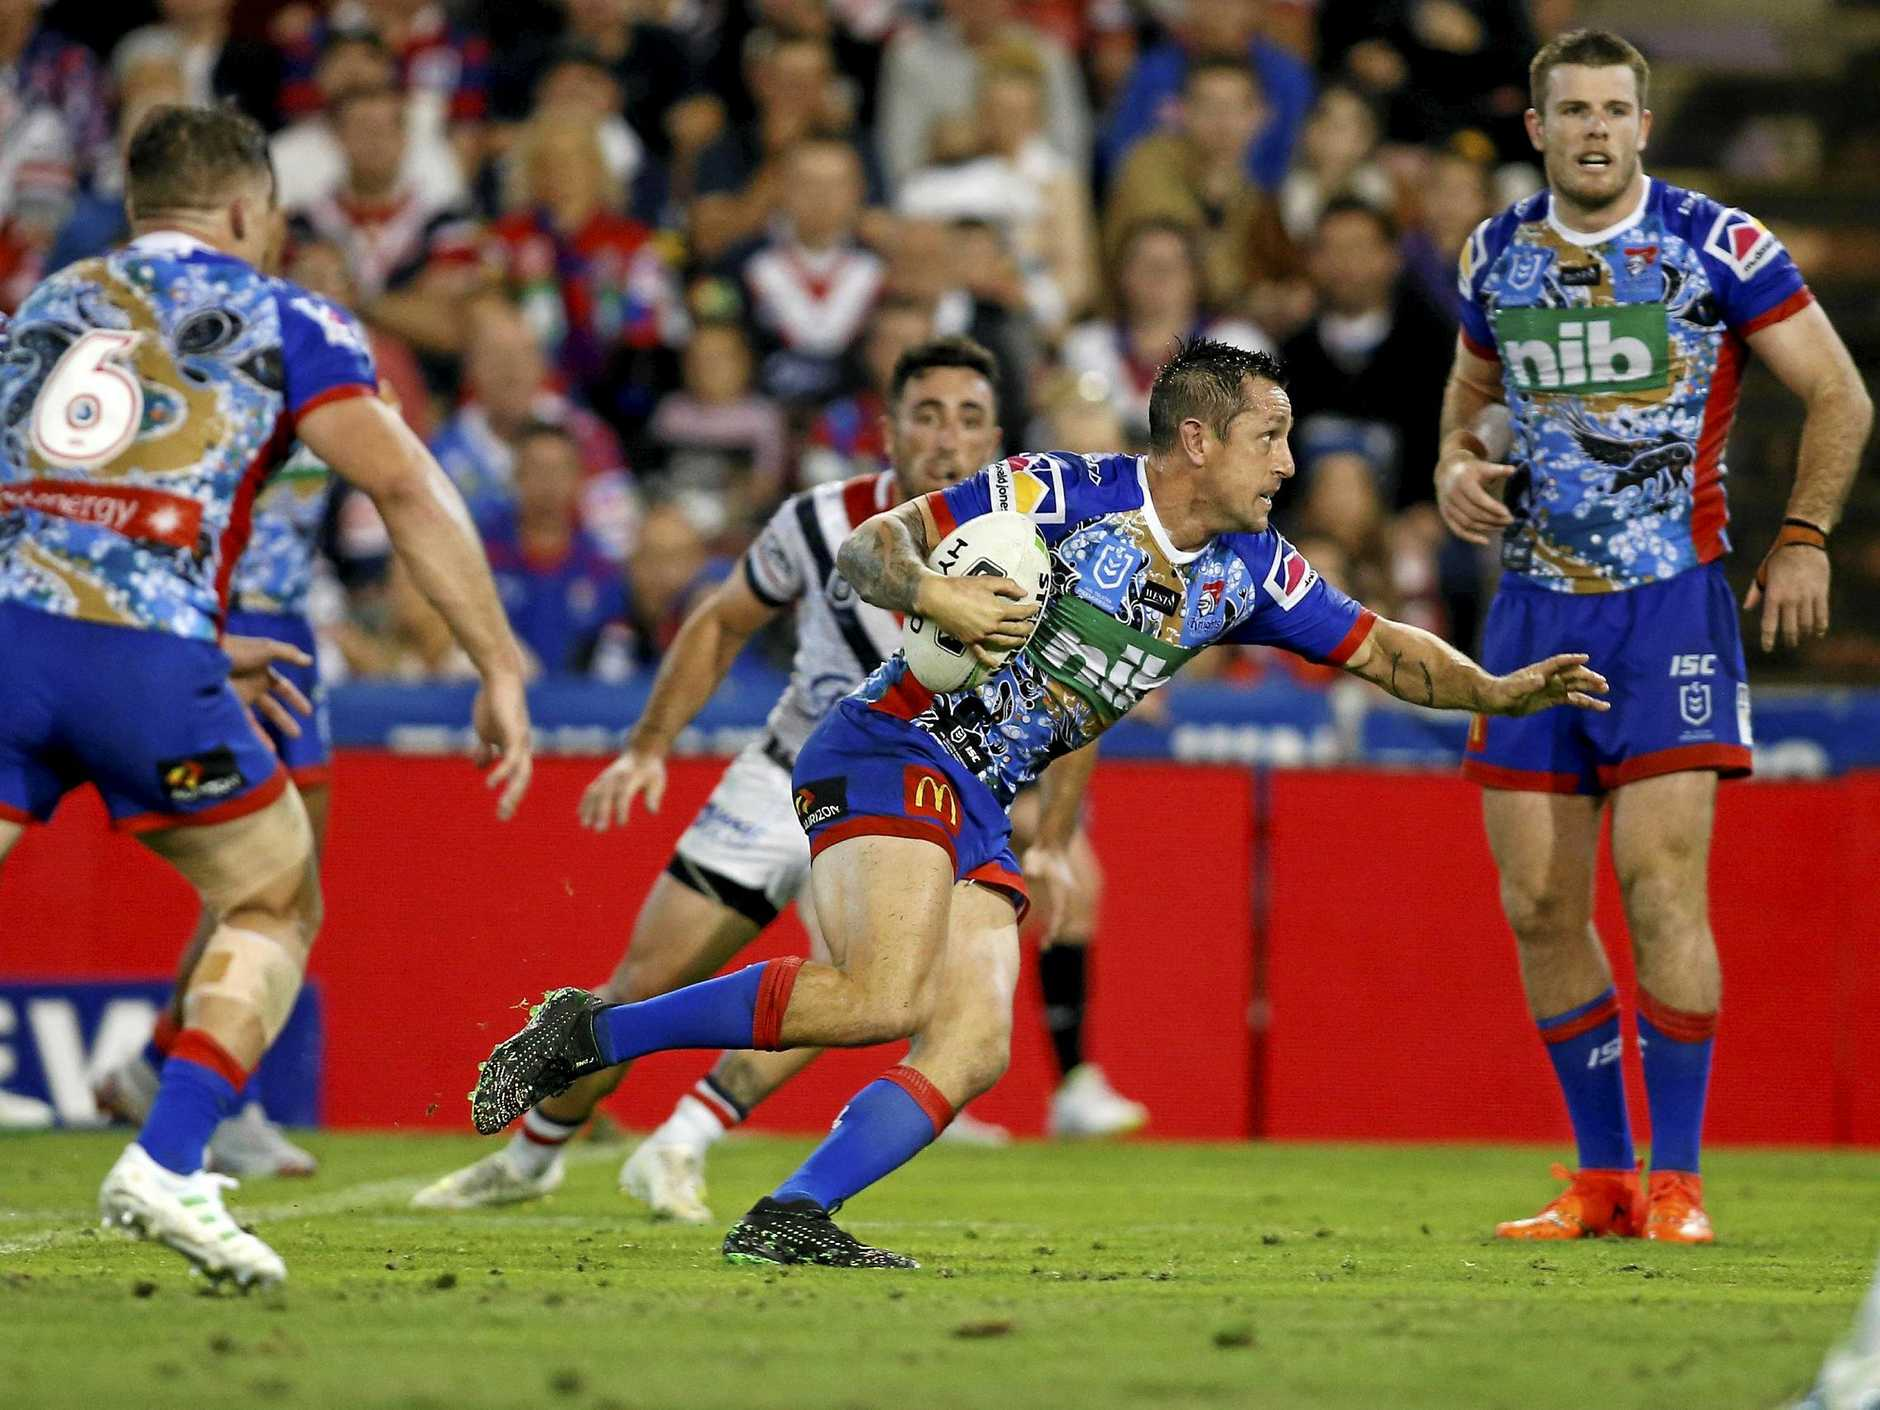 Mitchell Pearce attacks on Friday night in the Knights' clash with the Sydney Roosters at McDonald Jones Stadium, Newcastle.  Picture: Darren Pateman/AAP